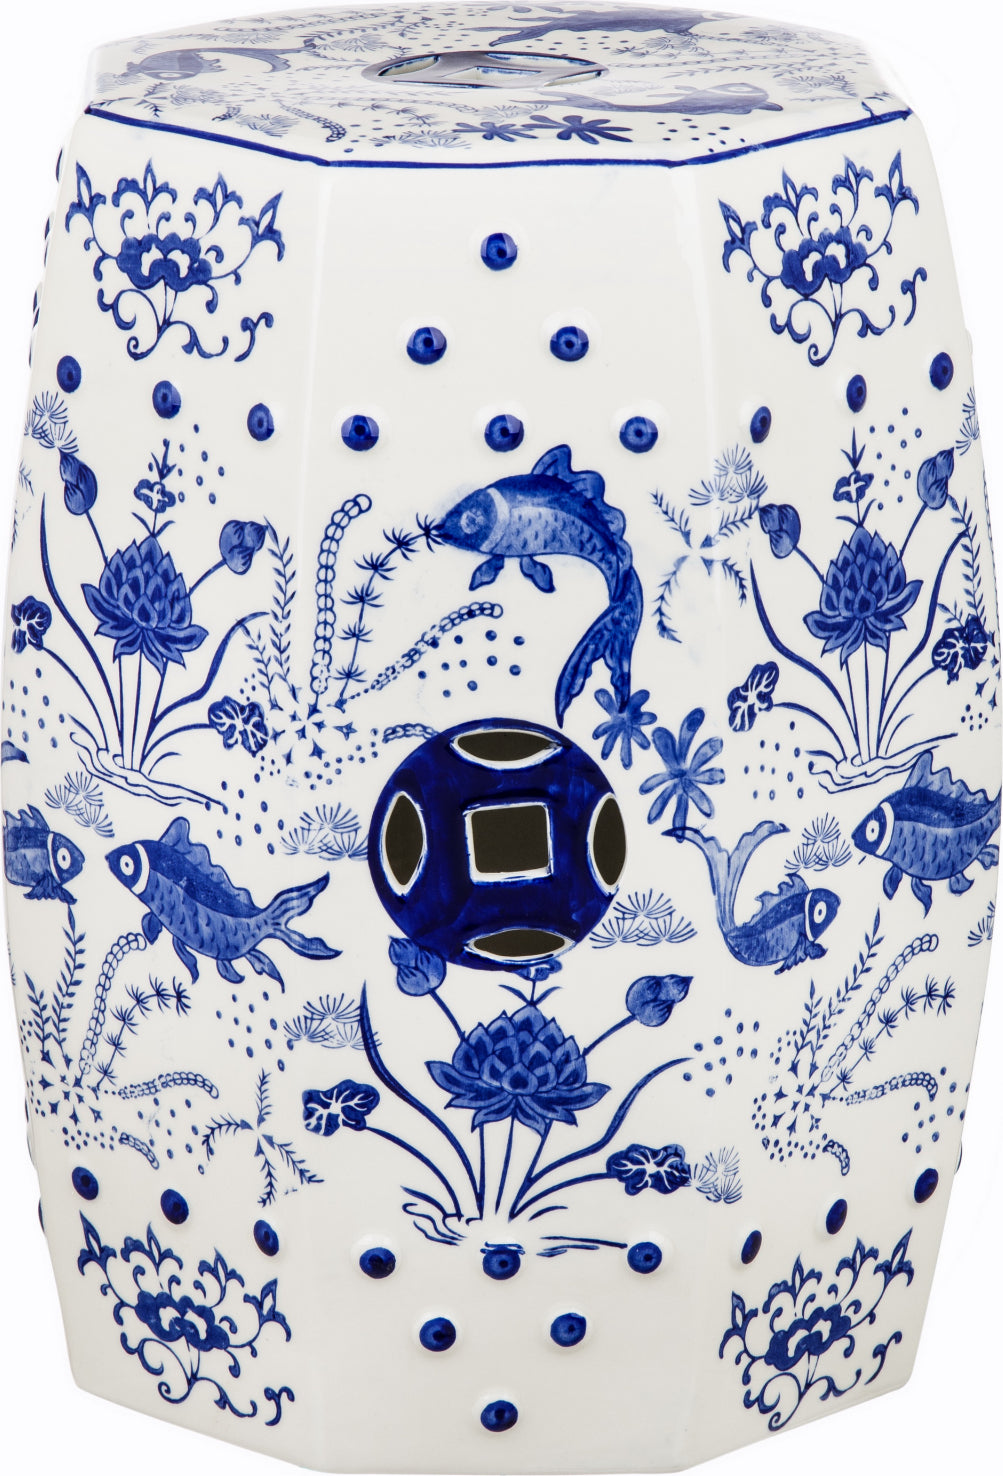 Safavieh Chinoiserie Cloud 9 Garden Stool Blue Furniture main image